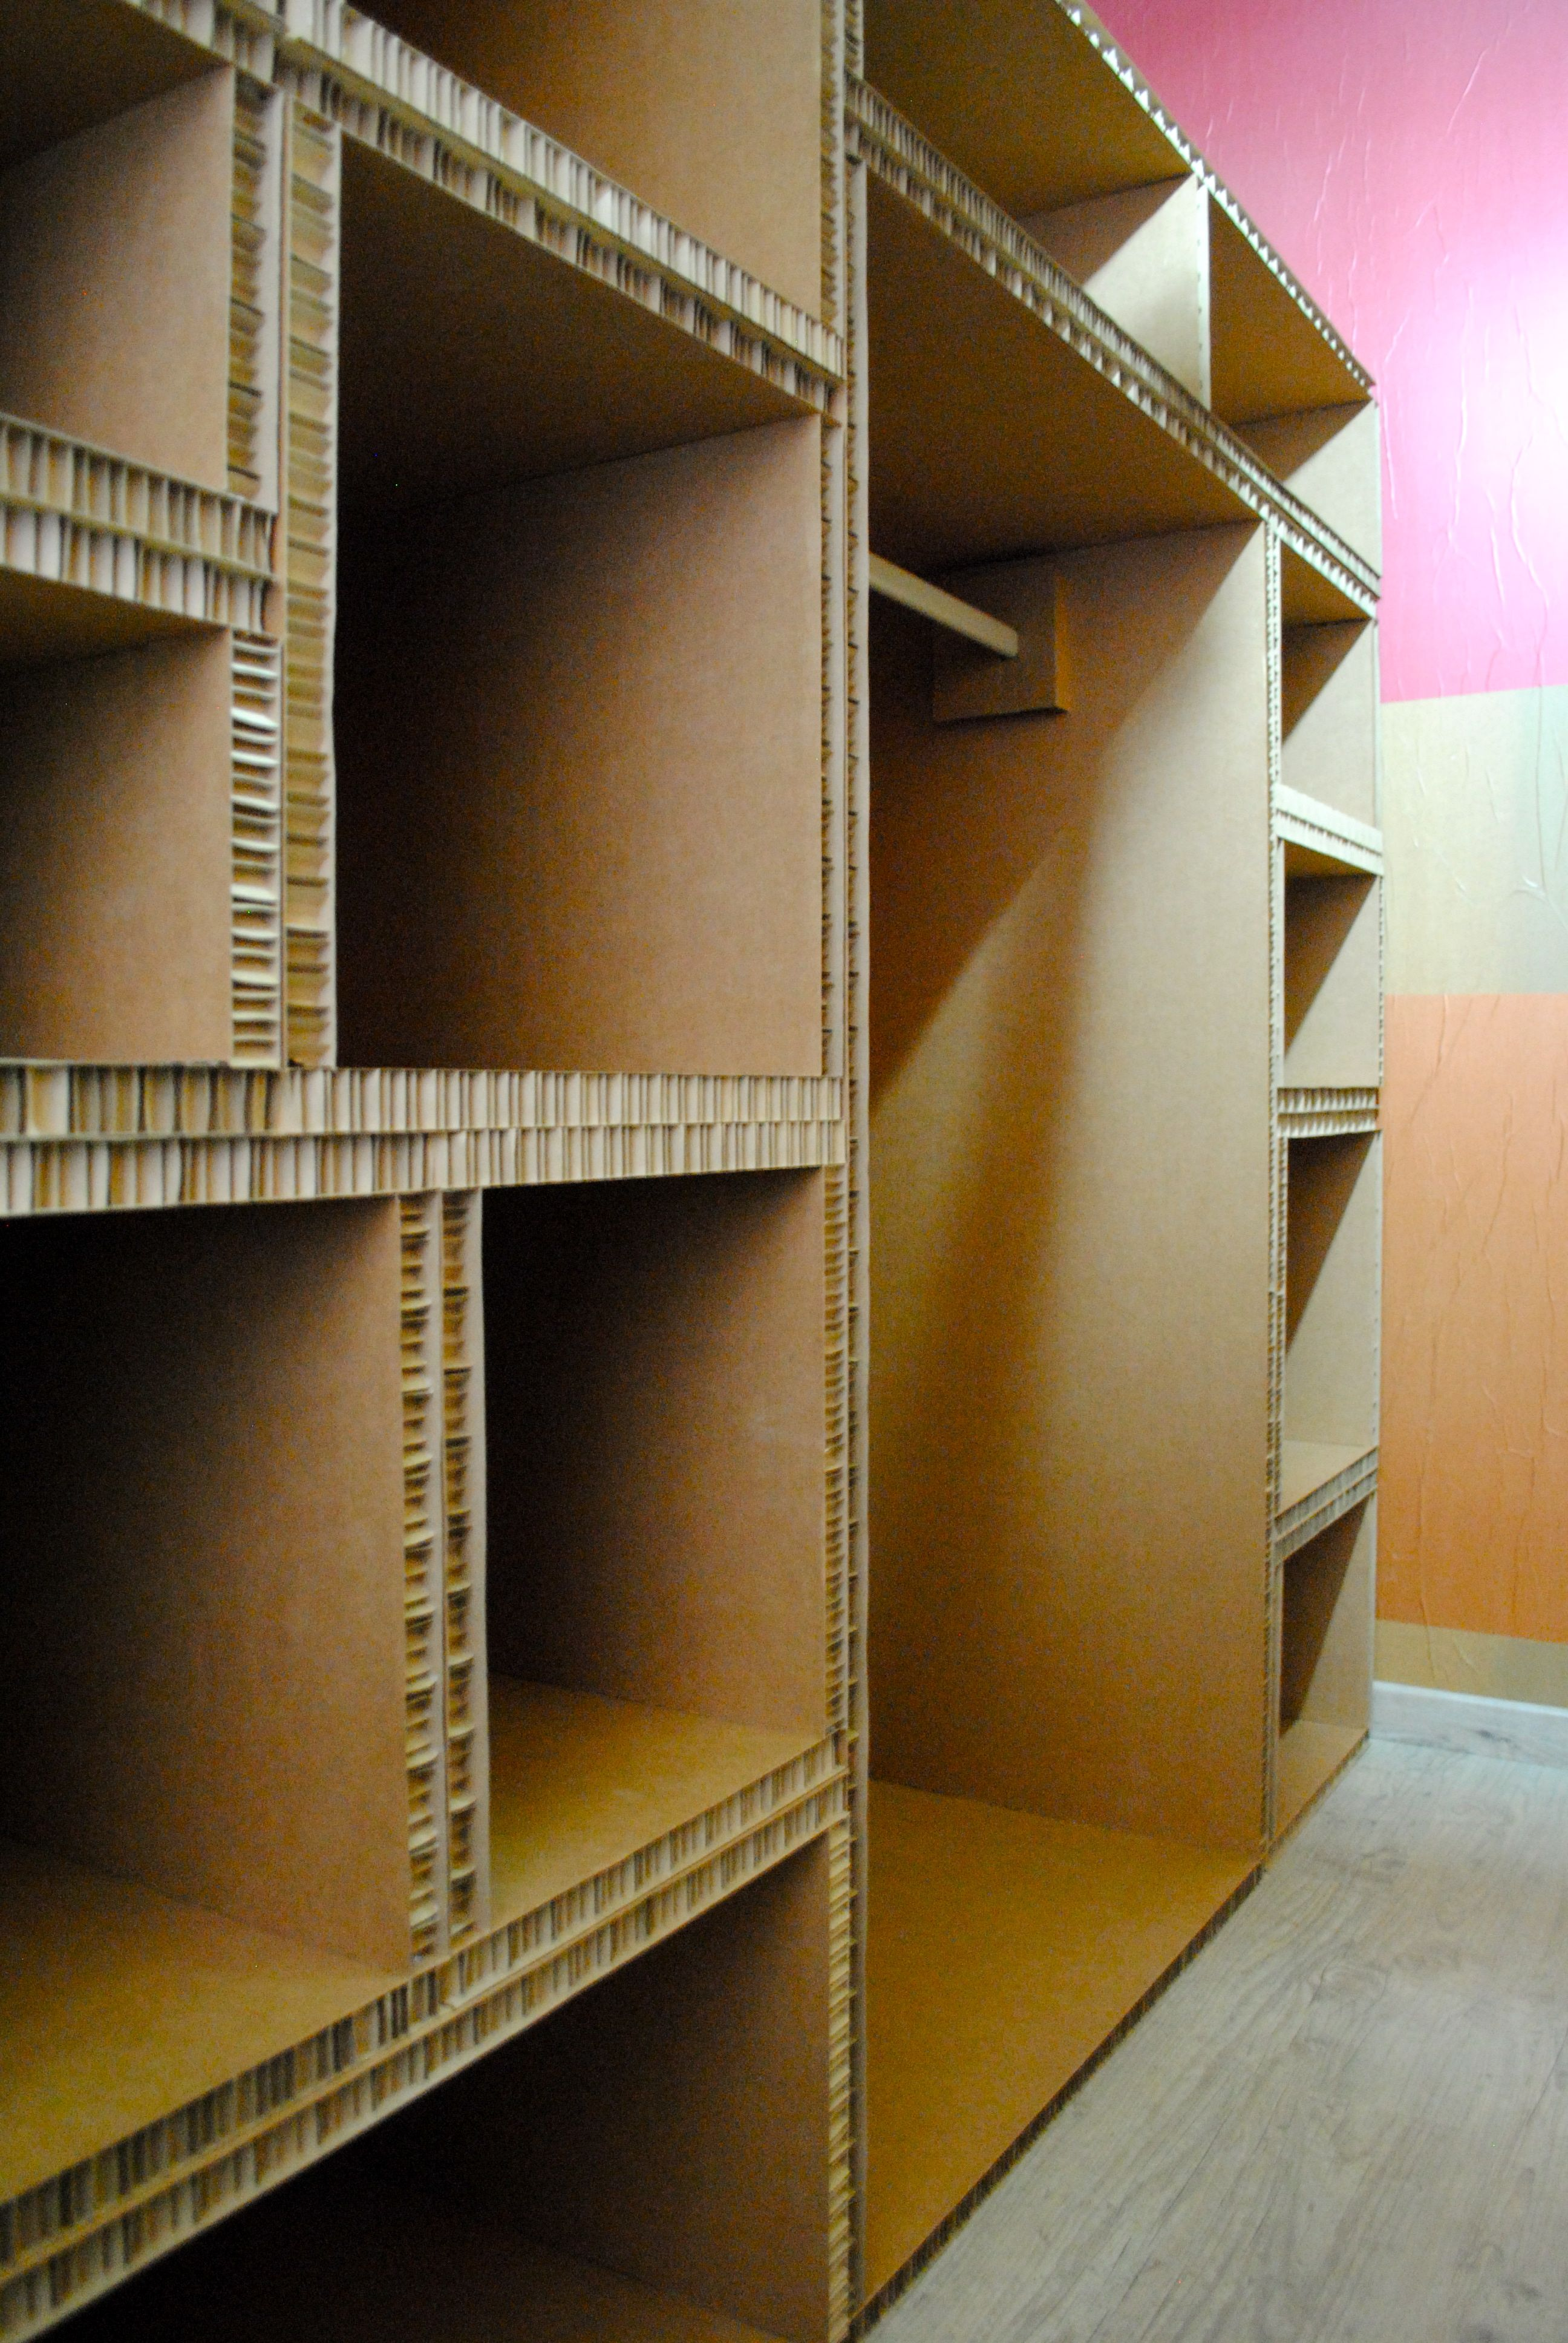 Dsc_0046 Carton Pinterest Cardboard Furniture And Organizing # Muebles Google Translate